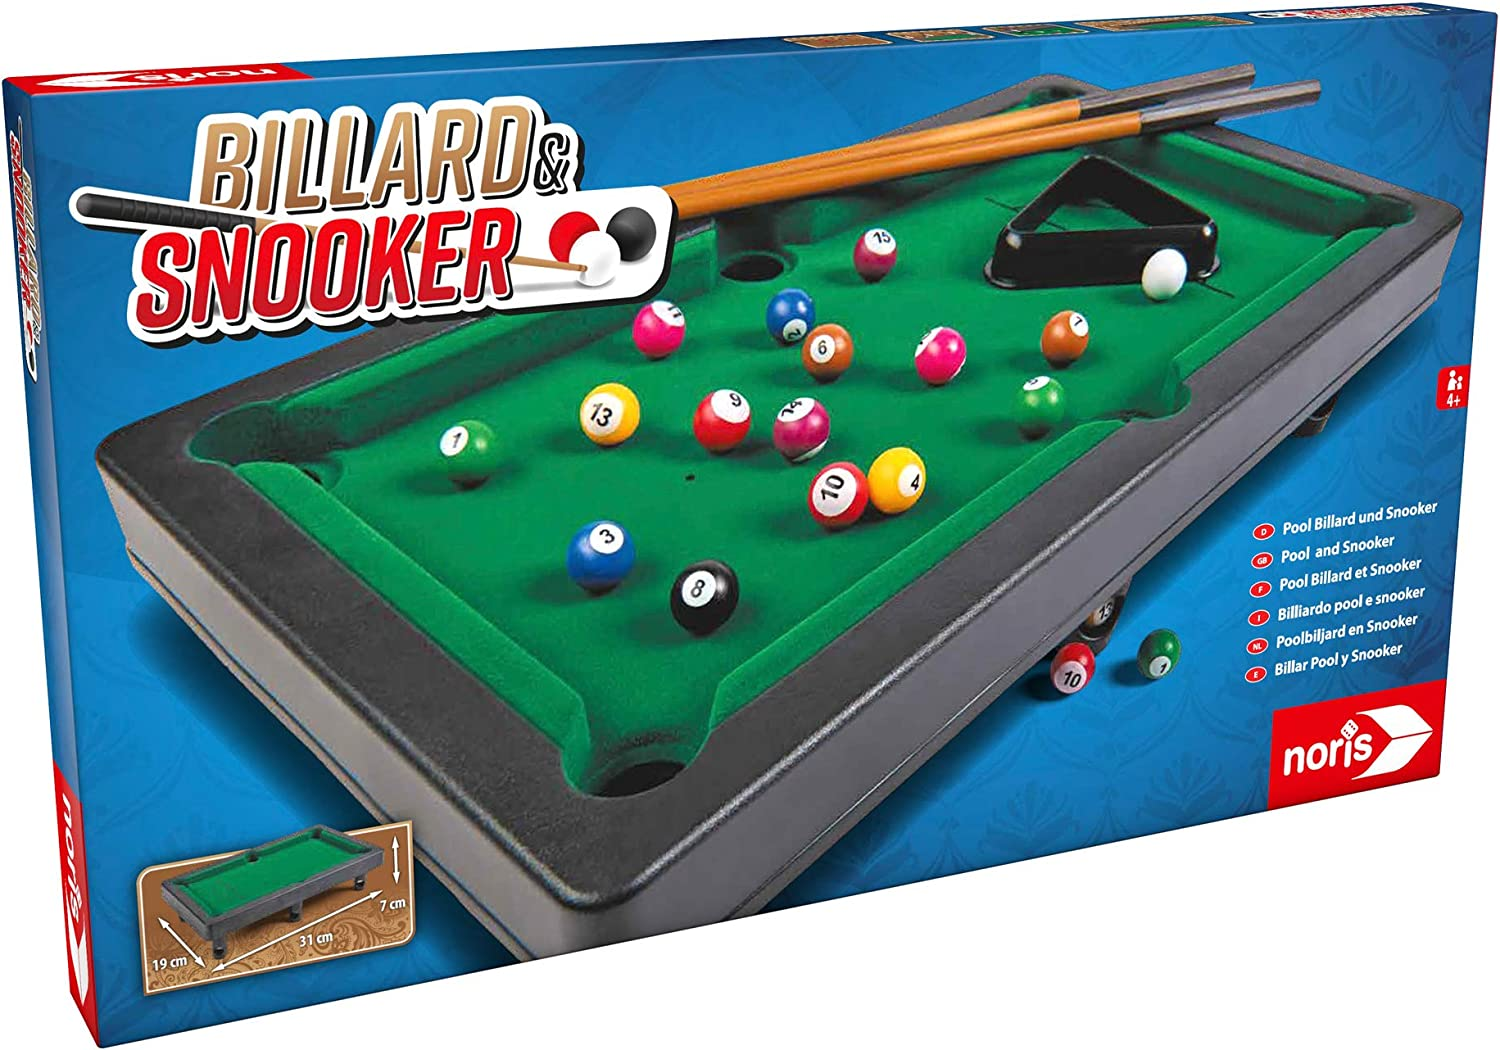 noris Pool Billiard & Snooker-Aktionsspiel für Die ganze Familie ...